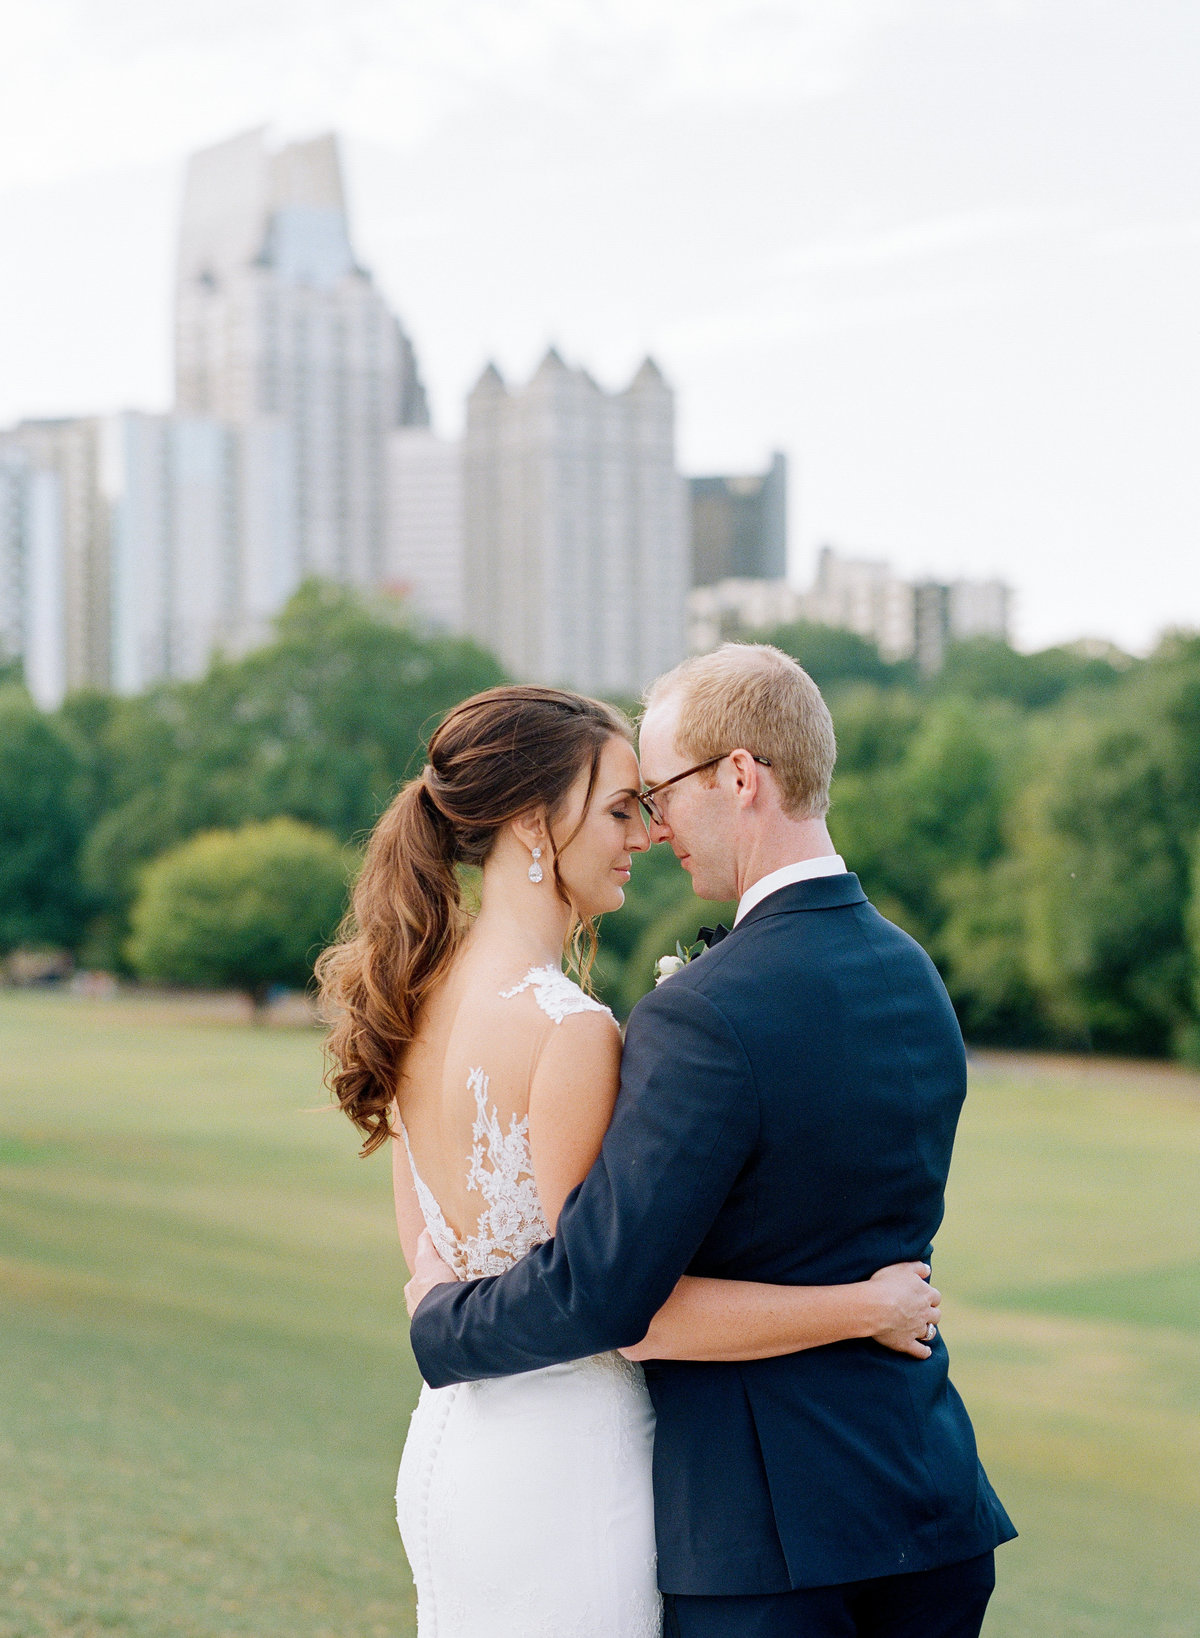 Wedding Sunset Photos Piedmont Park